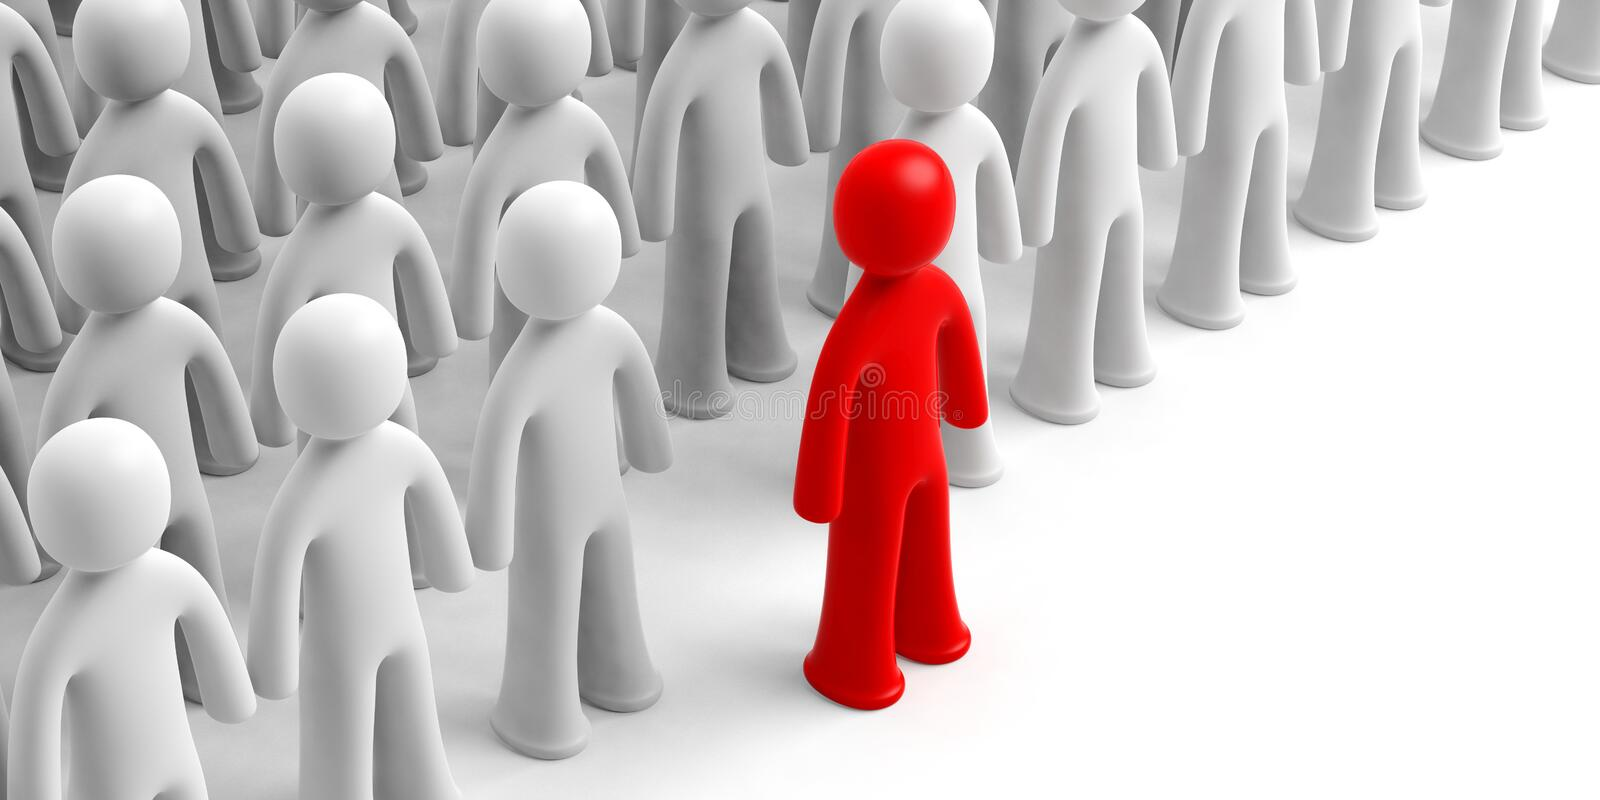 Crowd of white human figures, one red figure ahead, on white background, copy space. 3d illustration stock illustration